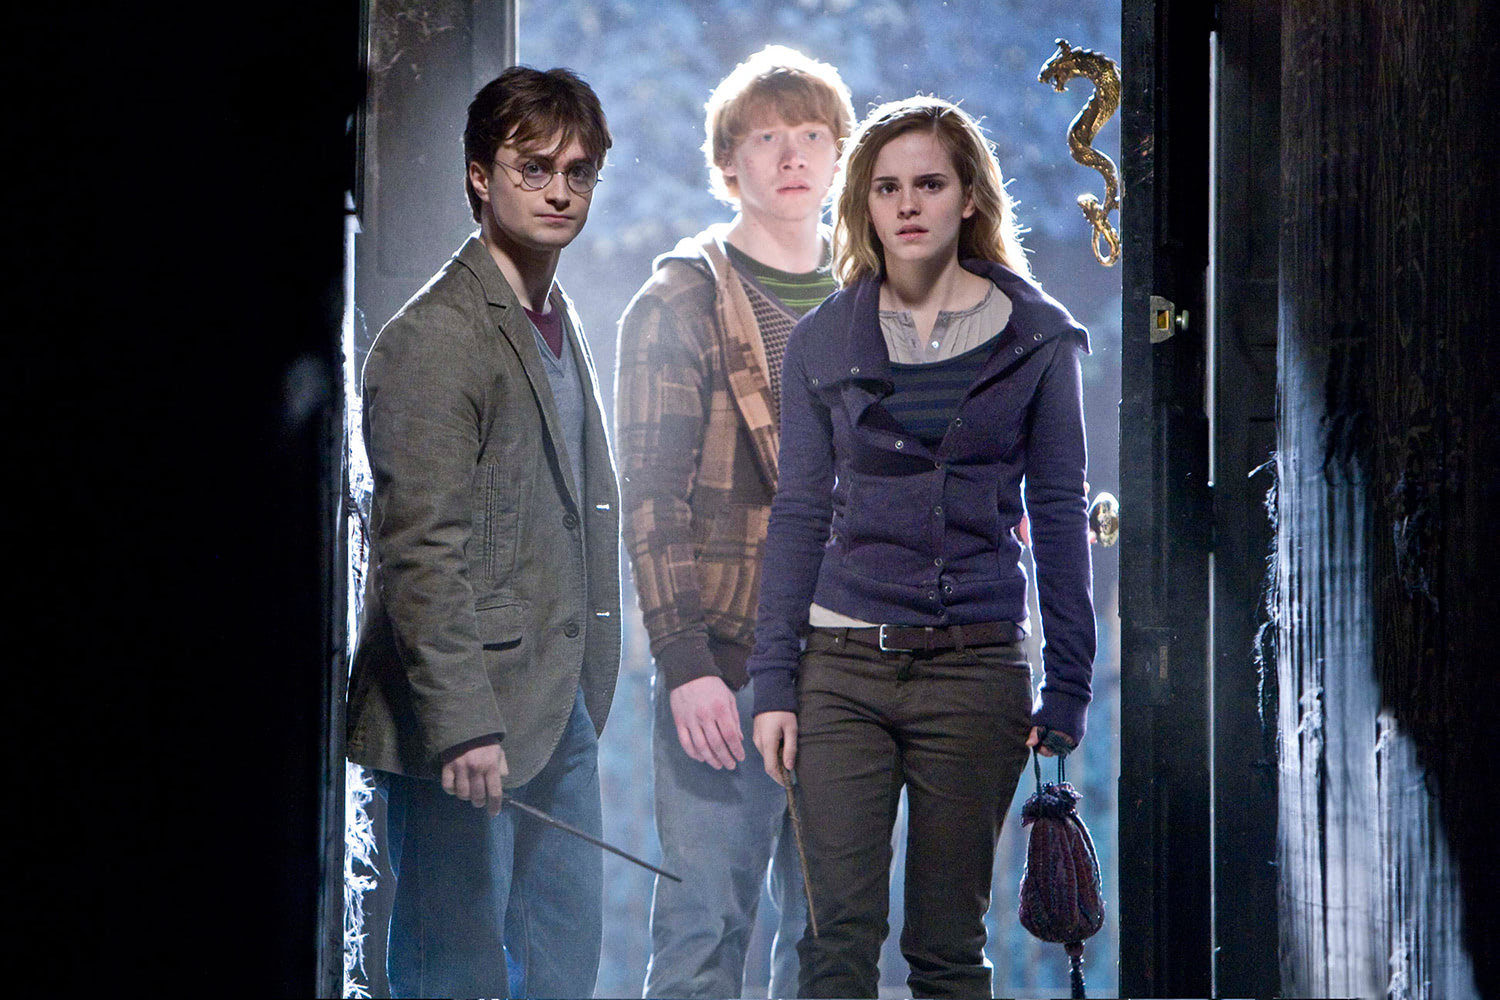 The trio enter Grimmauld Place